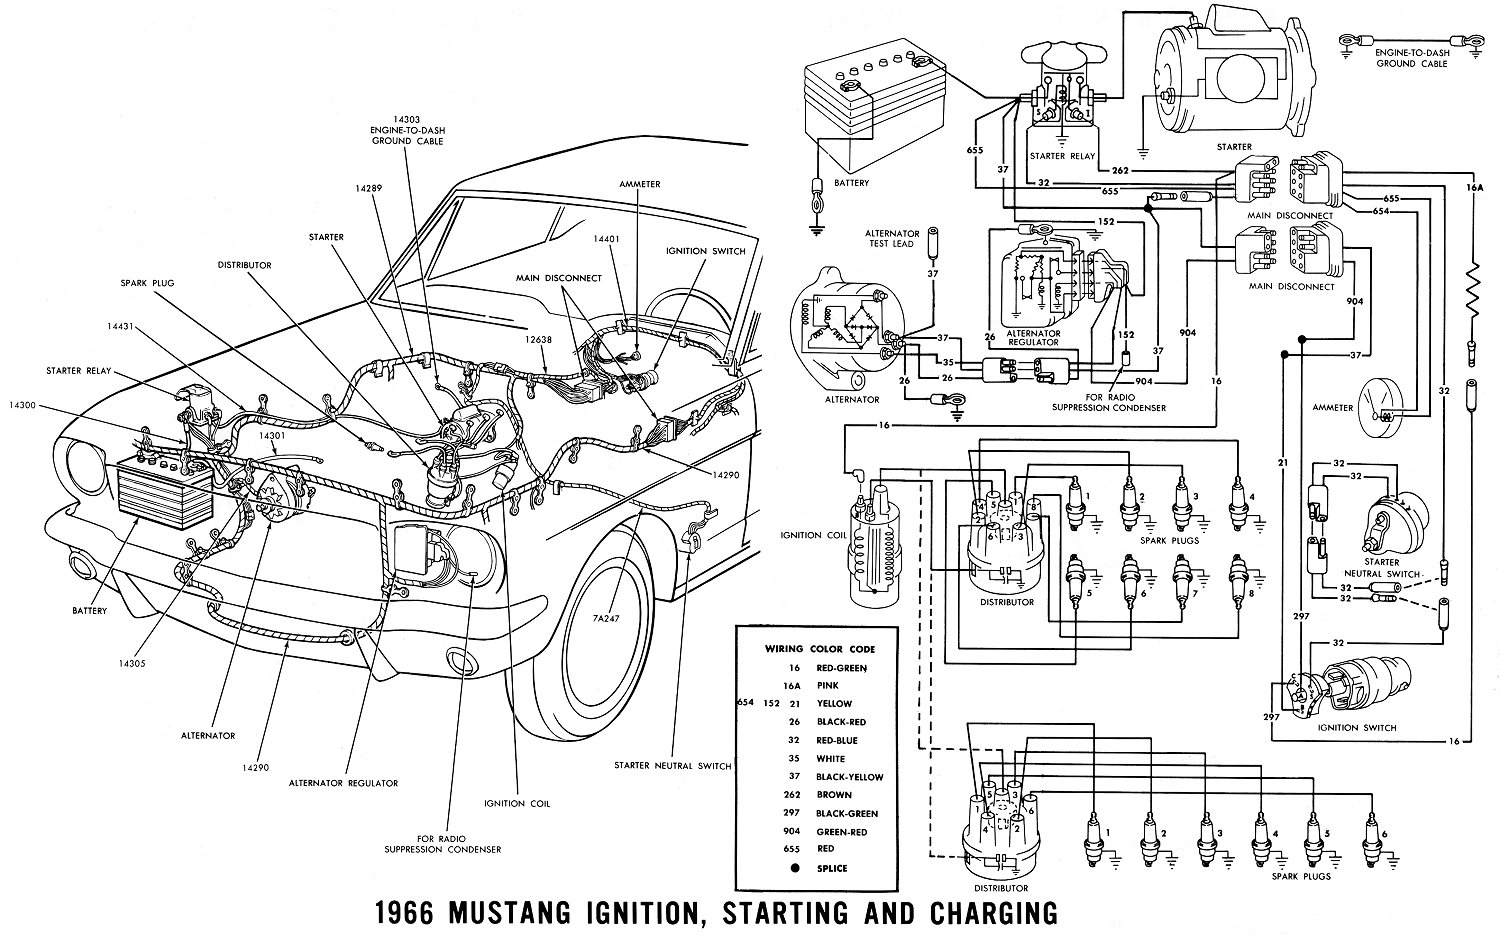 1969 ford mustang wiring diagram central heating s plan another led taillight question page1 monthly